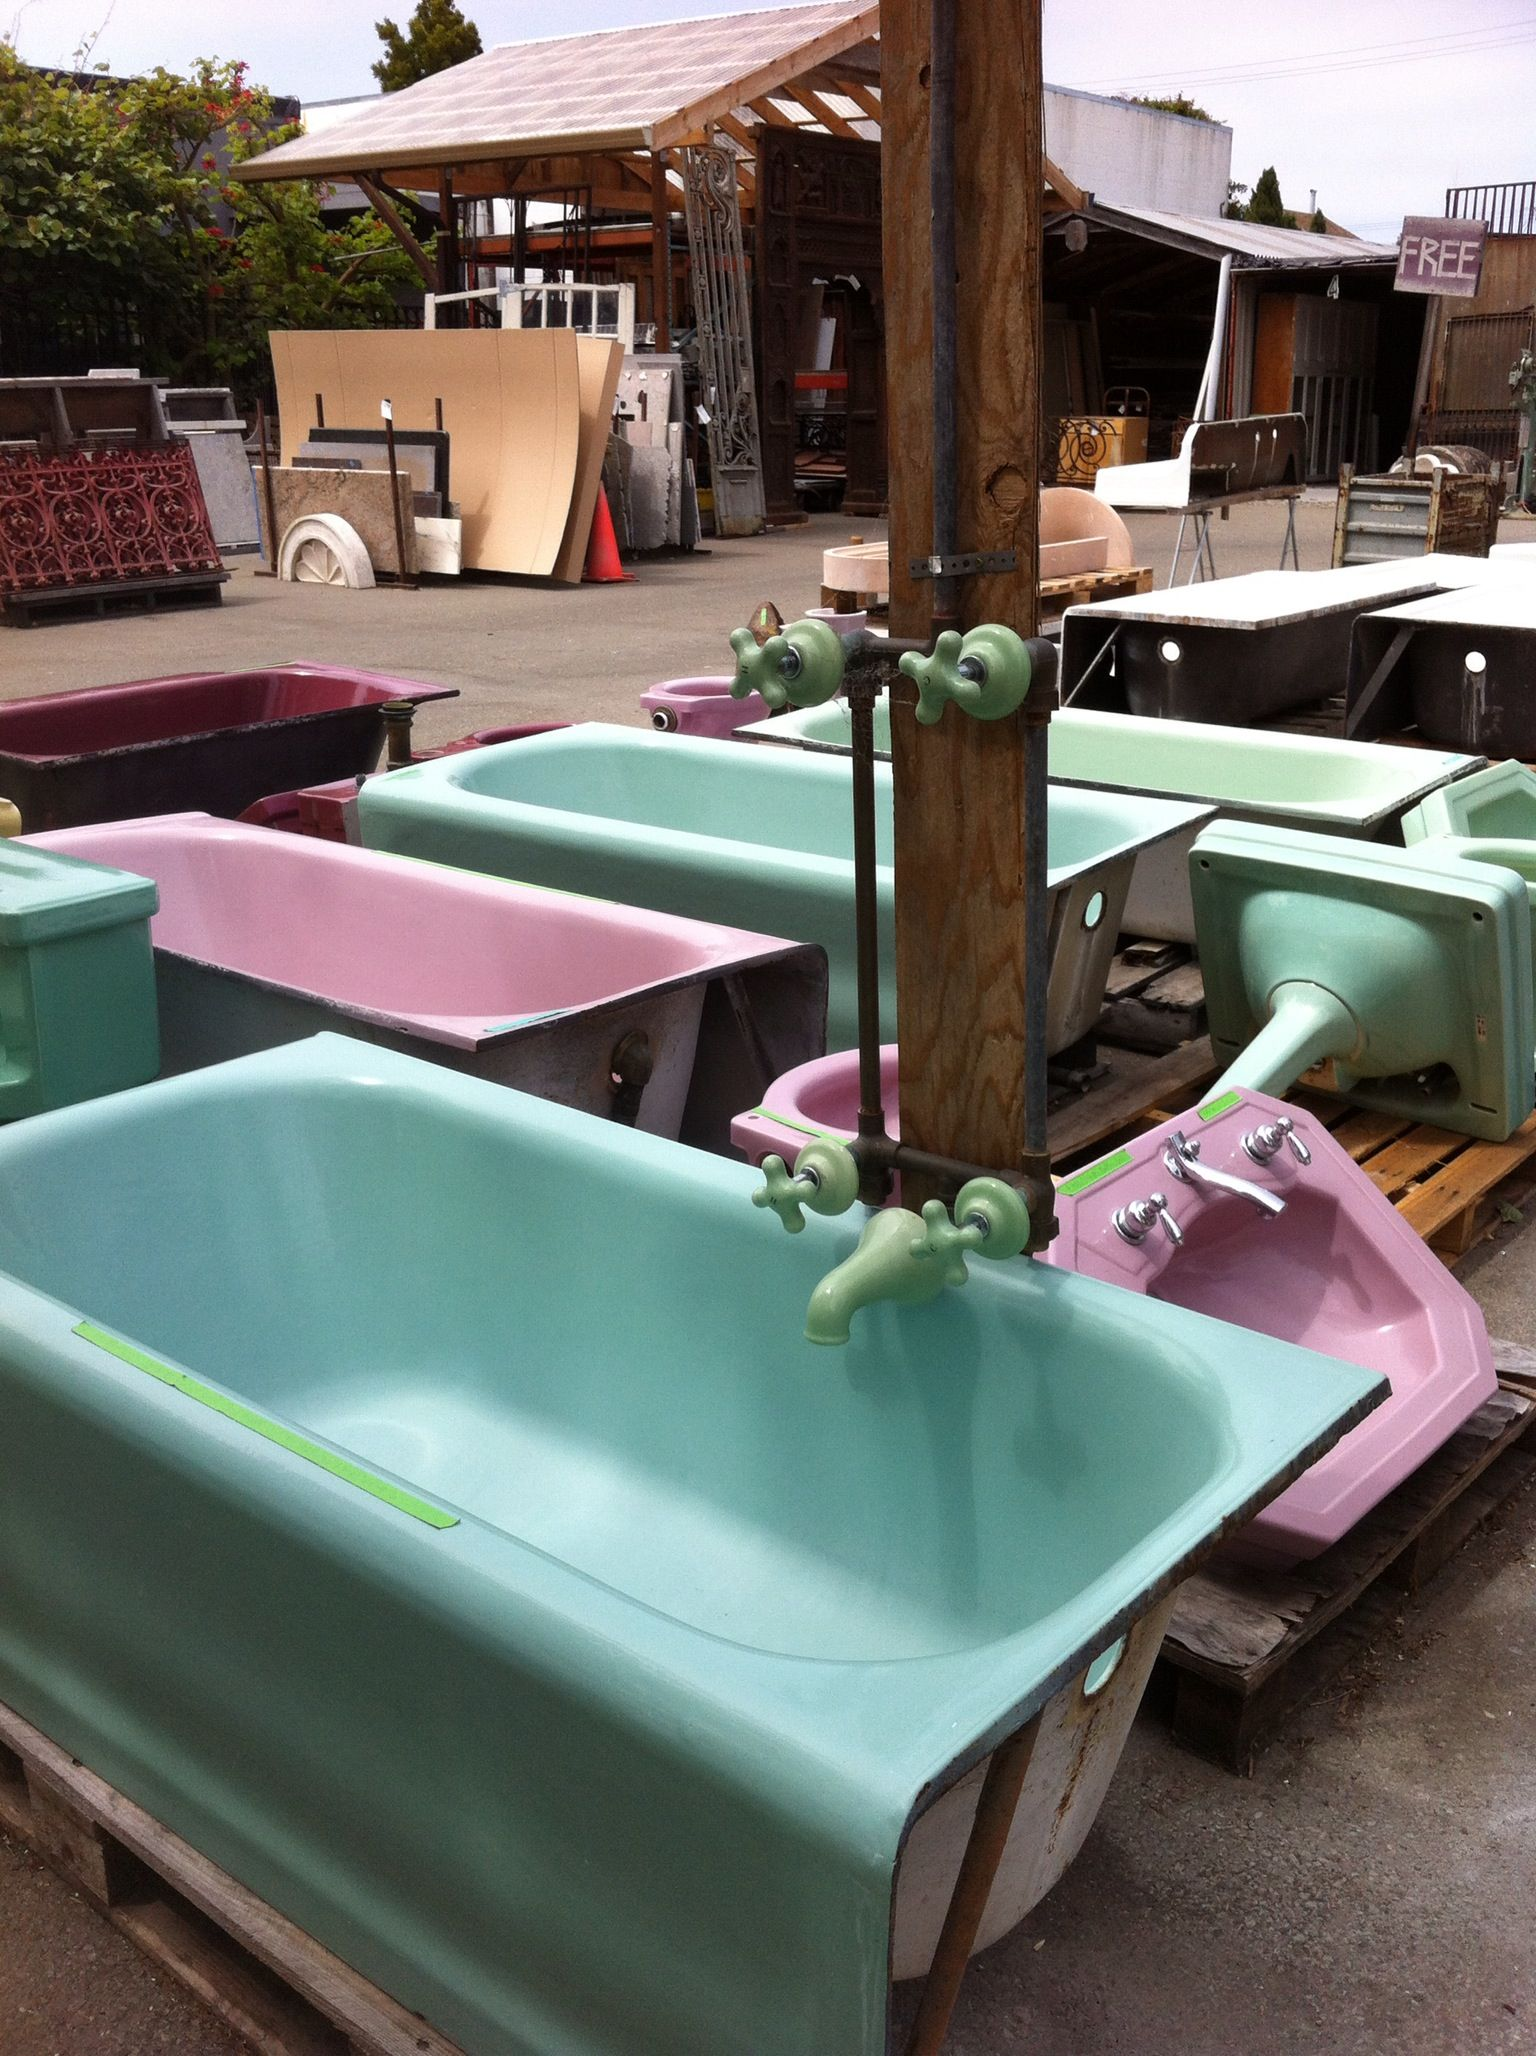 COLORFUL! Old Bathtubs #2 @ Ohmega Salvage Berkeley, CA #vintage ...